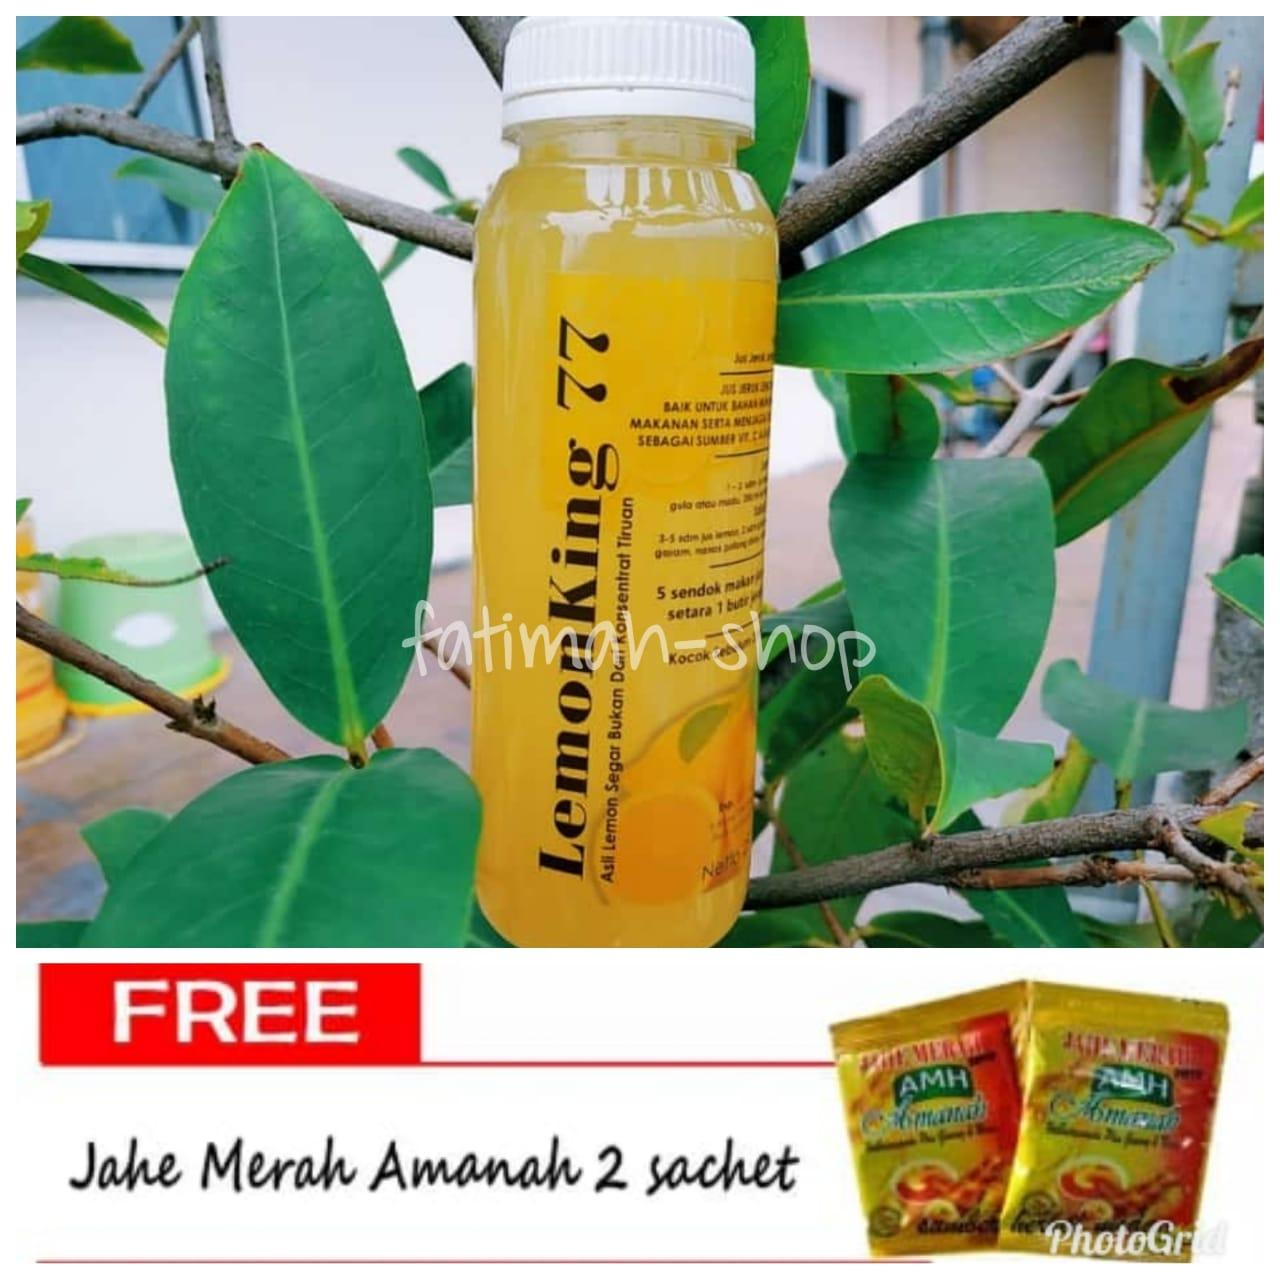 Peluntur Lemak- Sari Lemon Asli 100% Lemon Lemon King 77 Minuman Diet Fresh Sehat Lemonade 500 Ml Bukan Lemona By Fatimah-Shop.